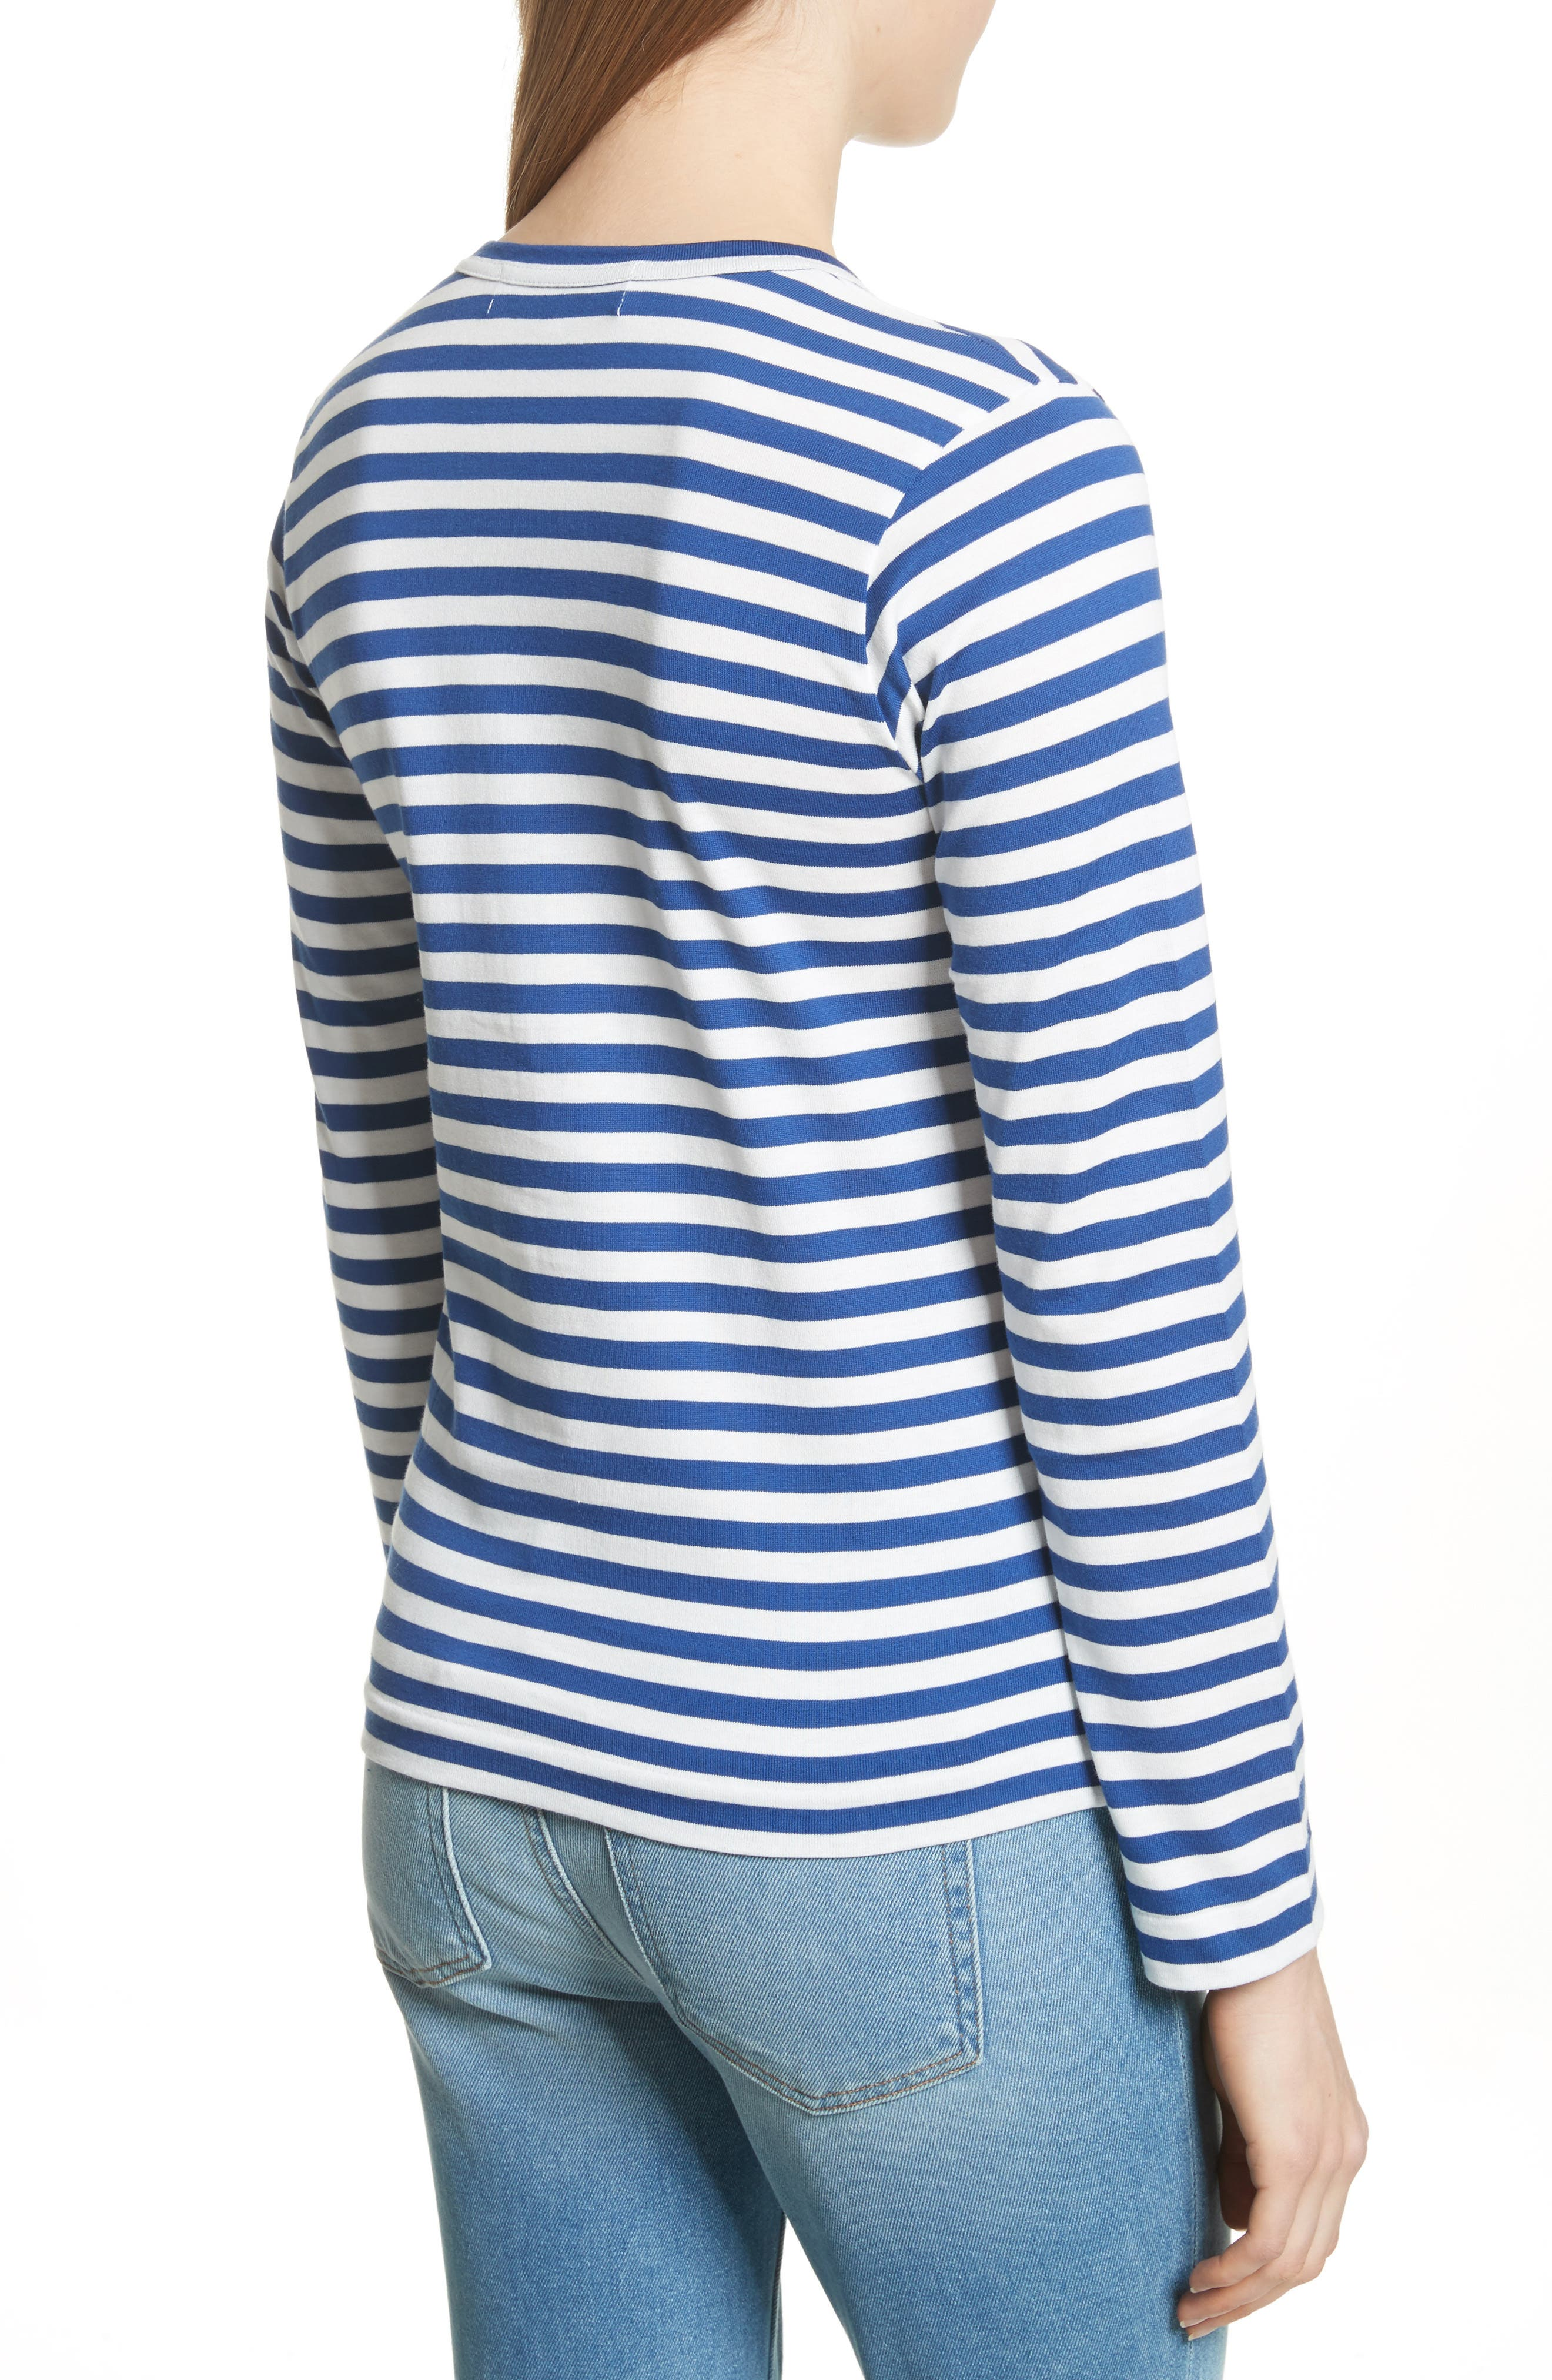 Comme des Garçons PLAY Stripe Cotton Tee,                             Alternate thumbnail 2, color,                             Navy/ White